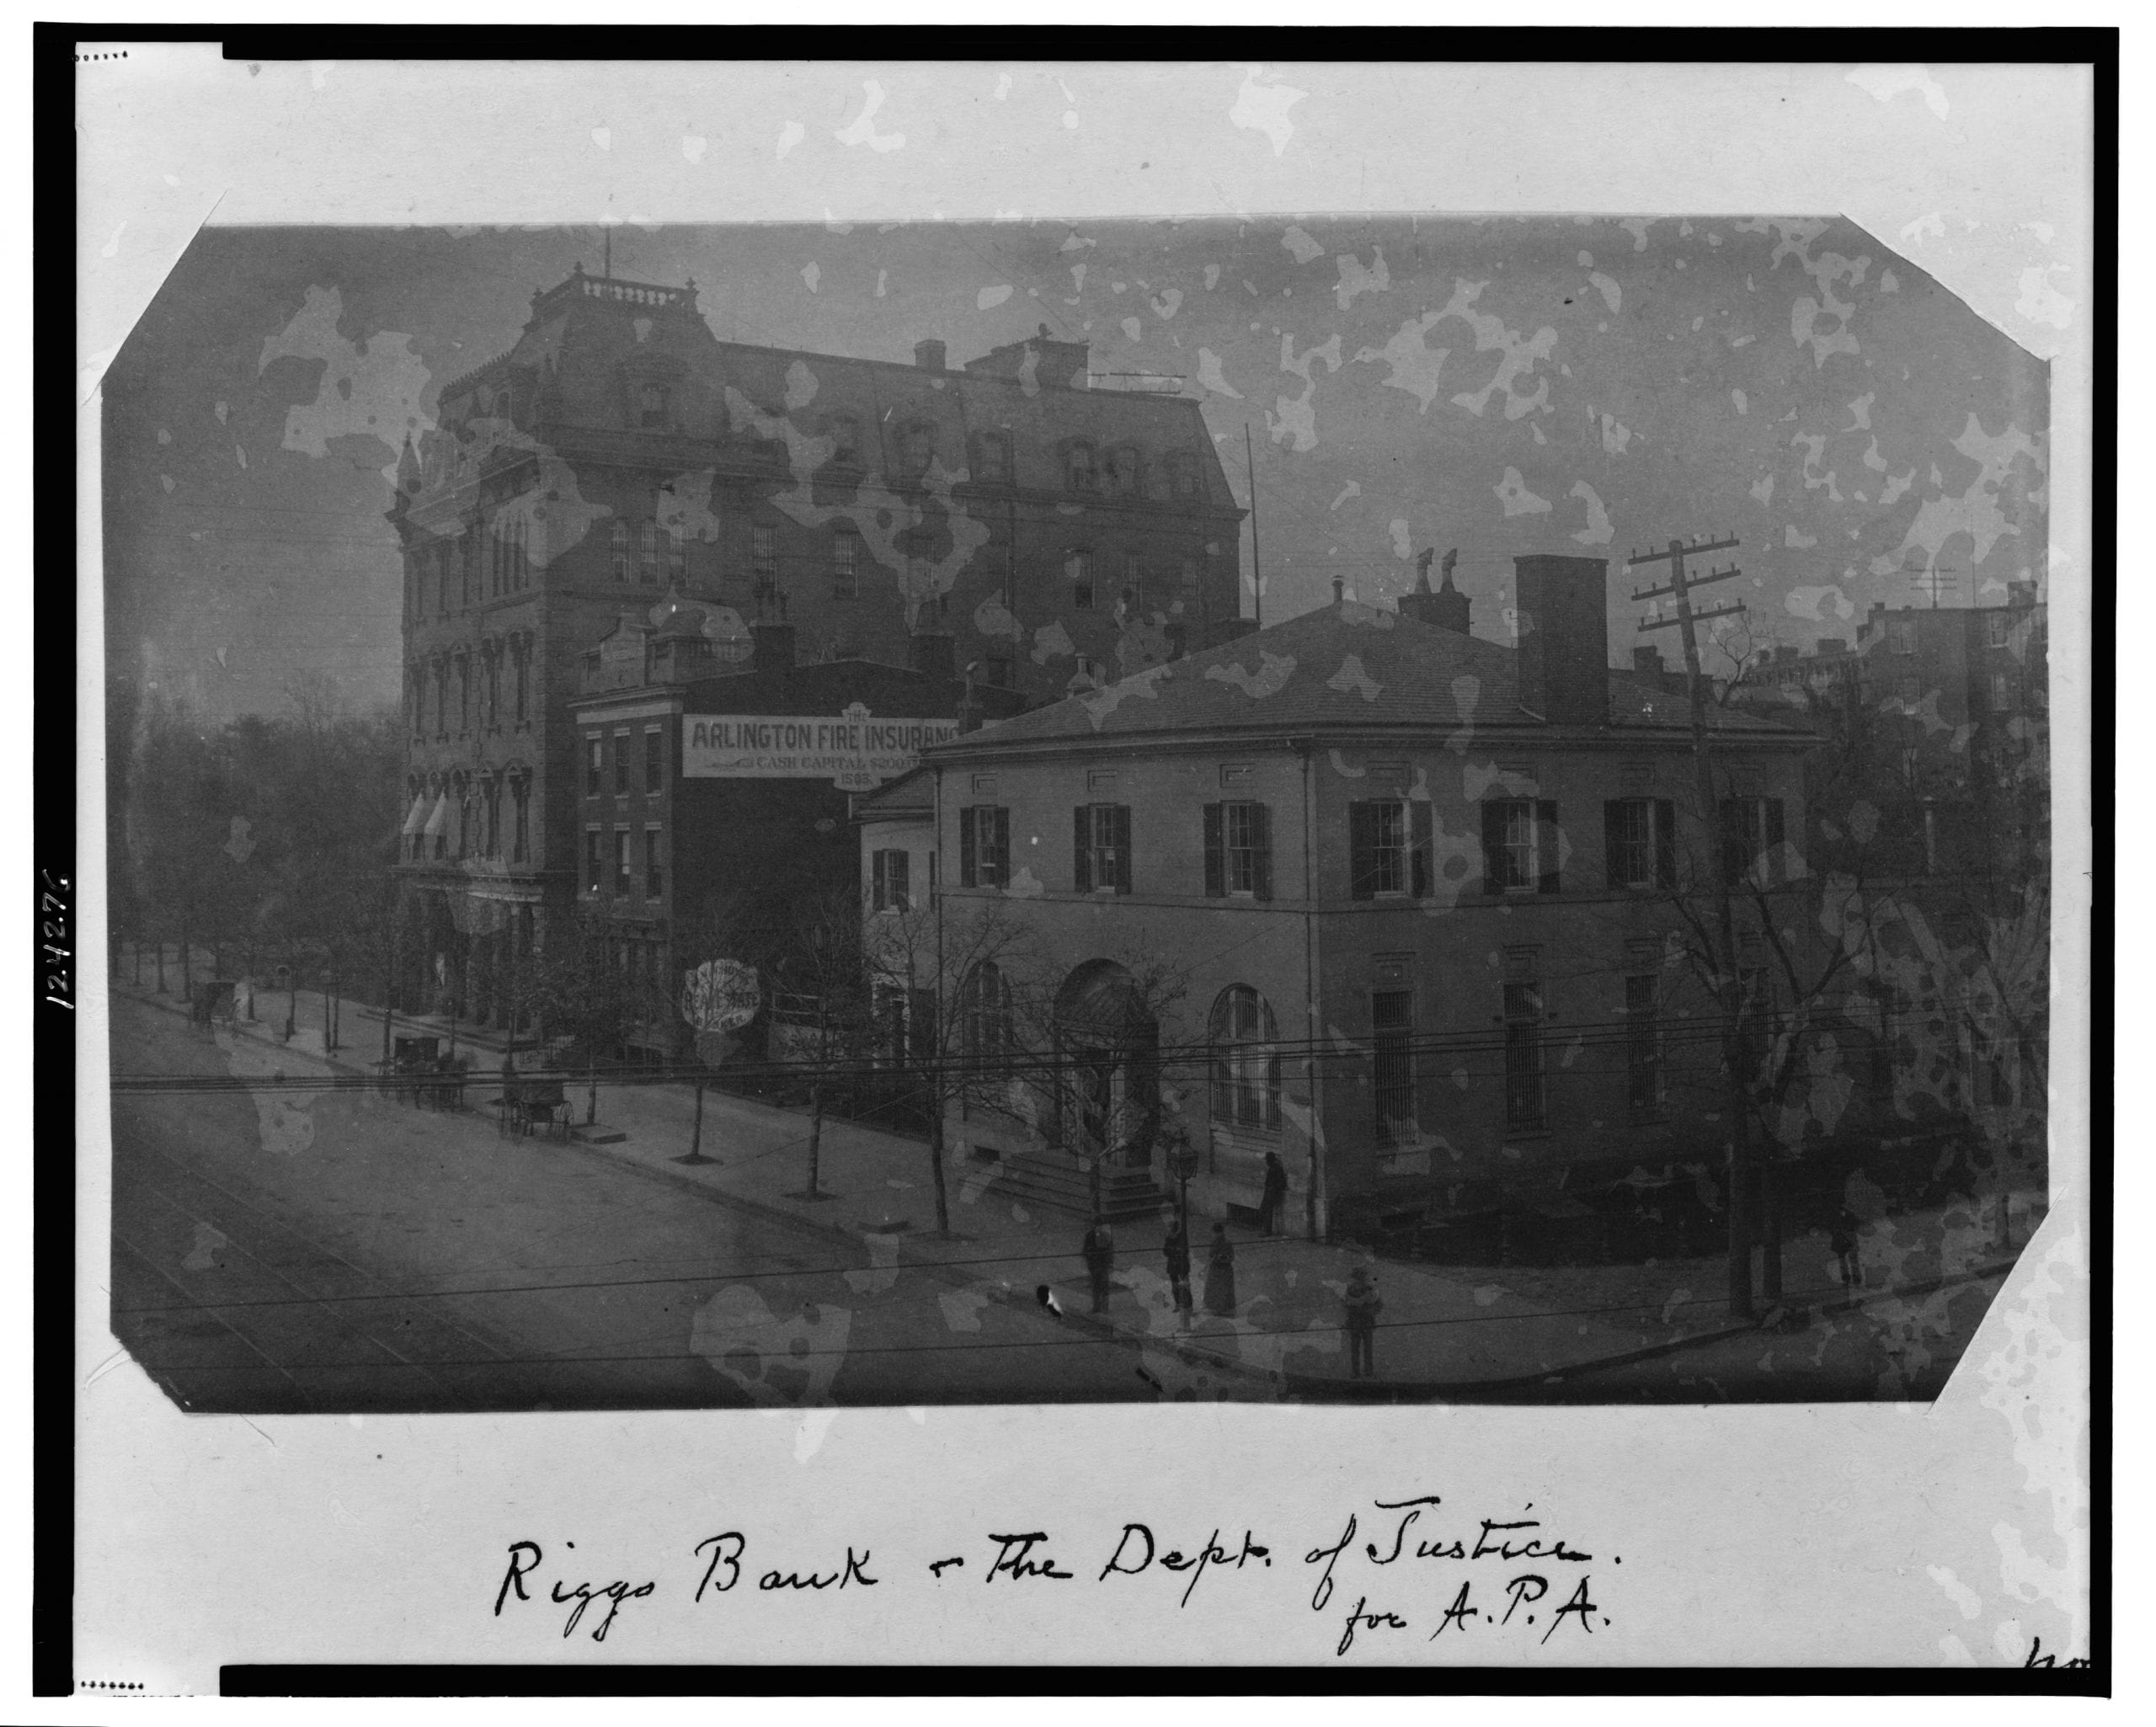 Riggs Bank Photo Dated November 14th, 1888